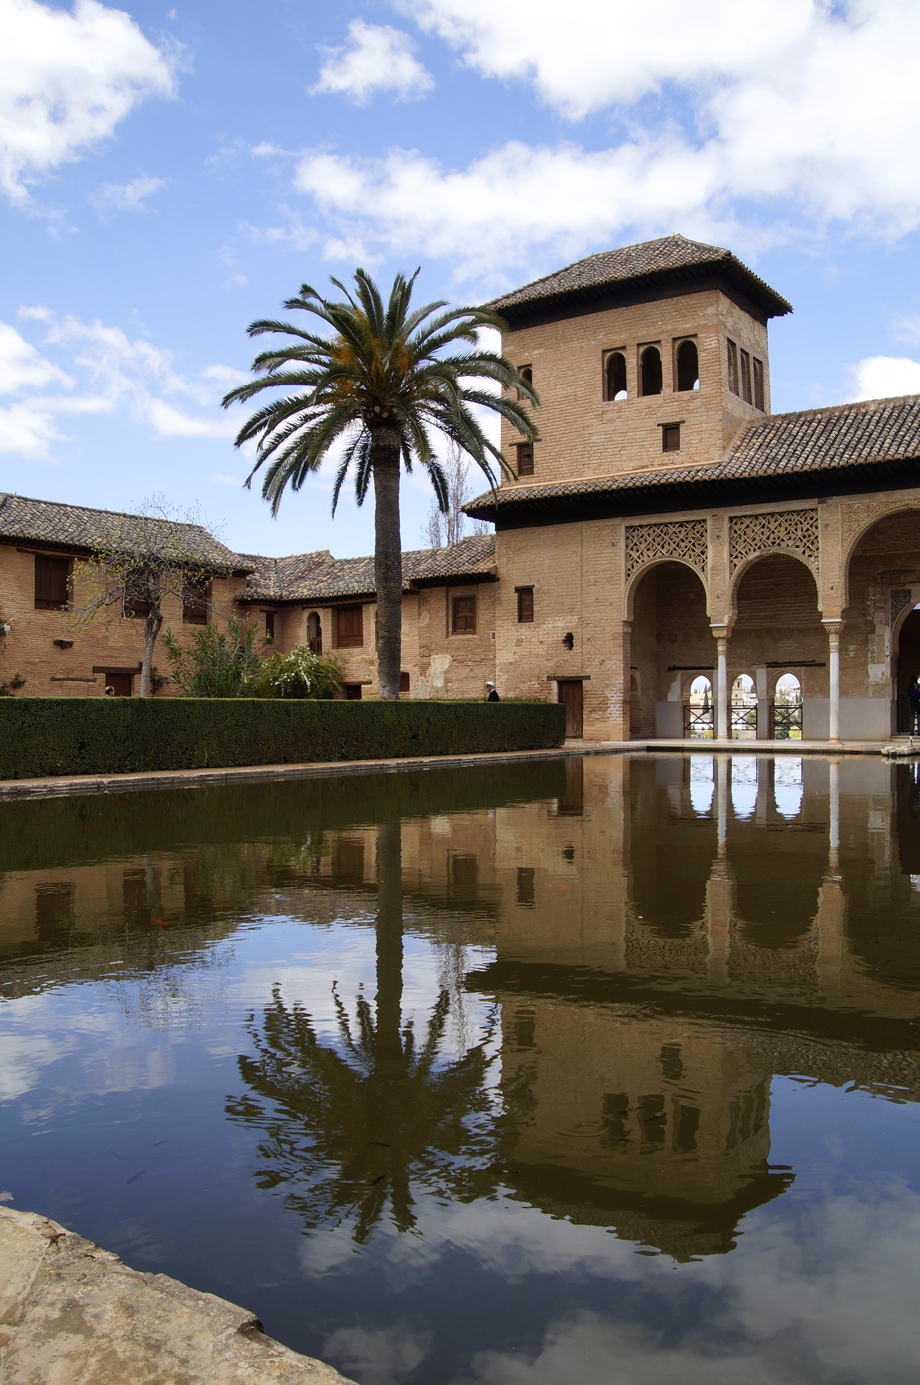 Ynas Reise Blog | The Happy Camper in Granada | Alhambra